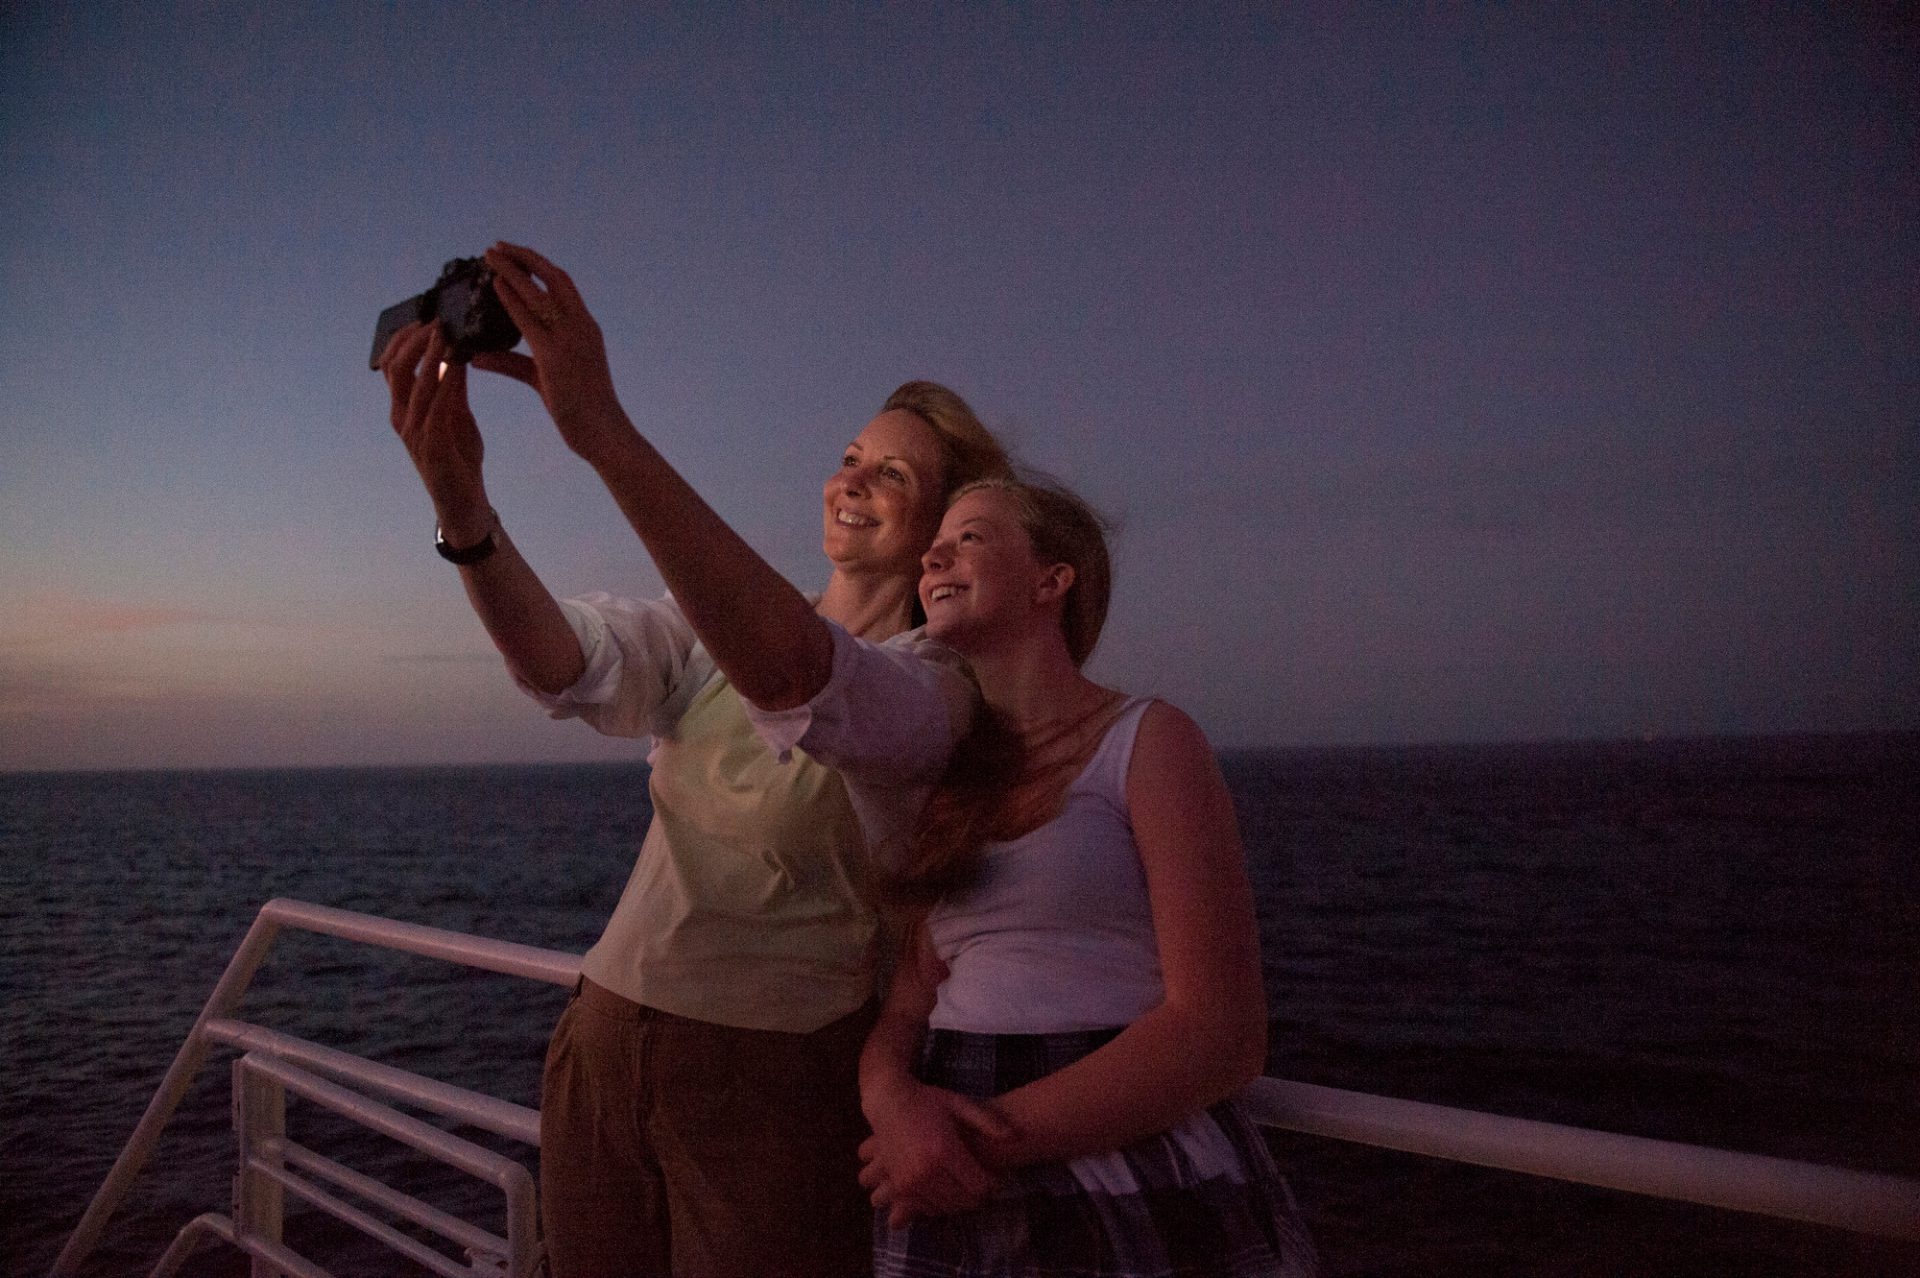 Photo: A mother and daughter take a picture of themselves as they cross the Equator, near Isabella Island in Galapagos National Park.